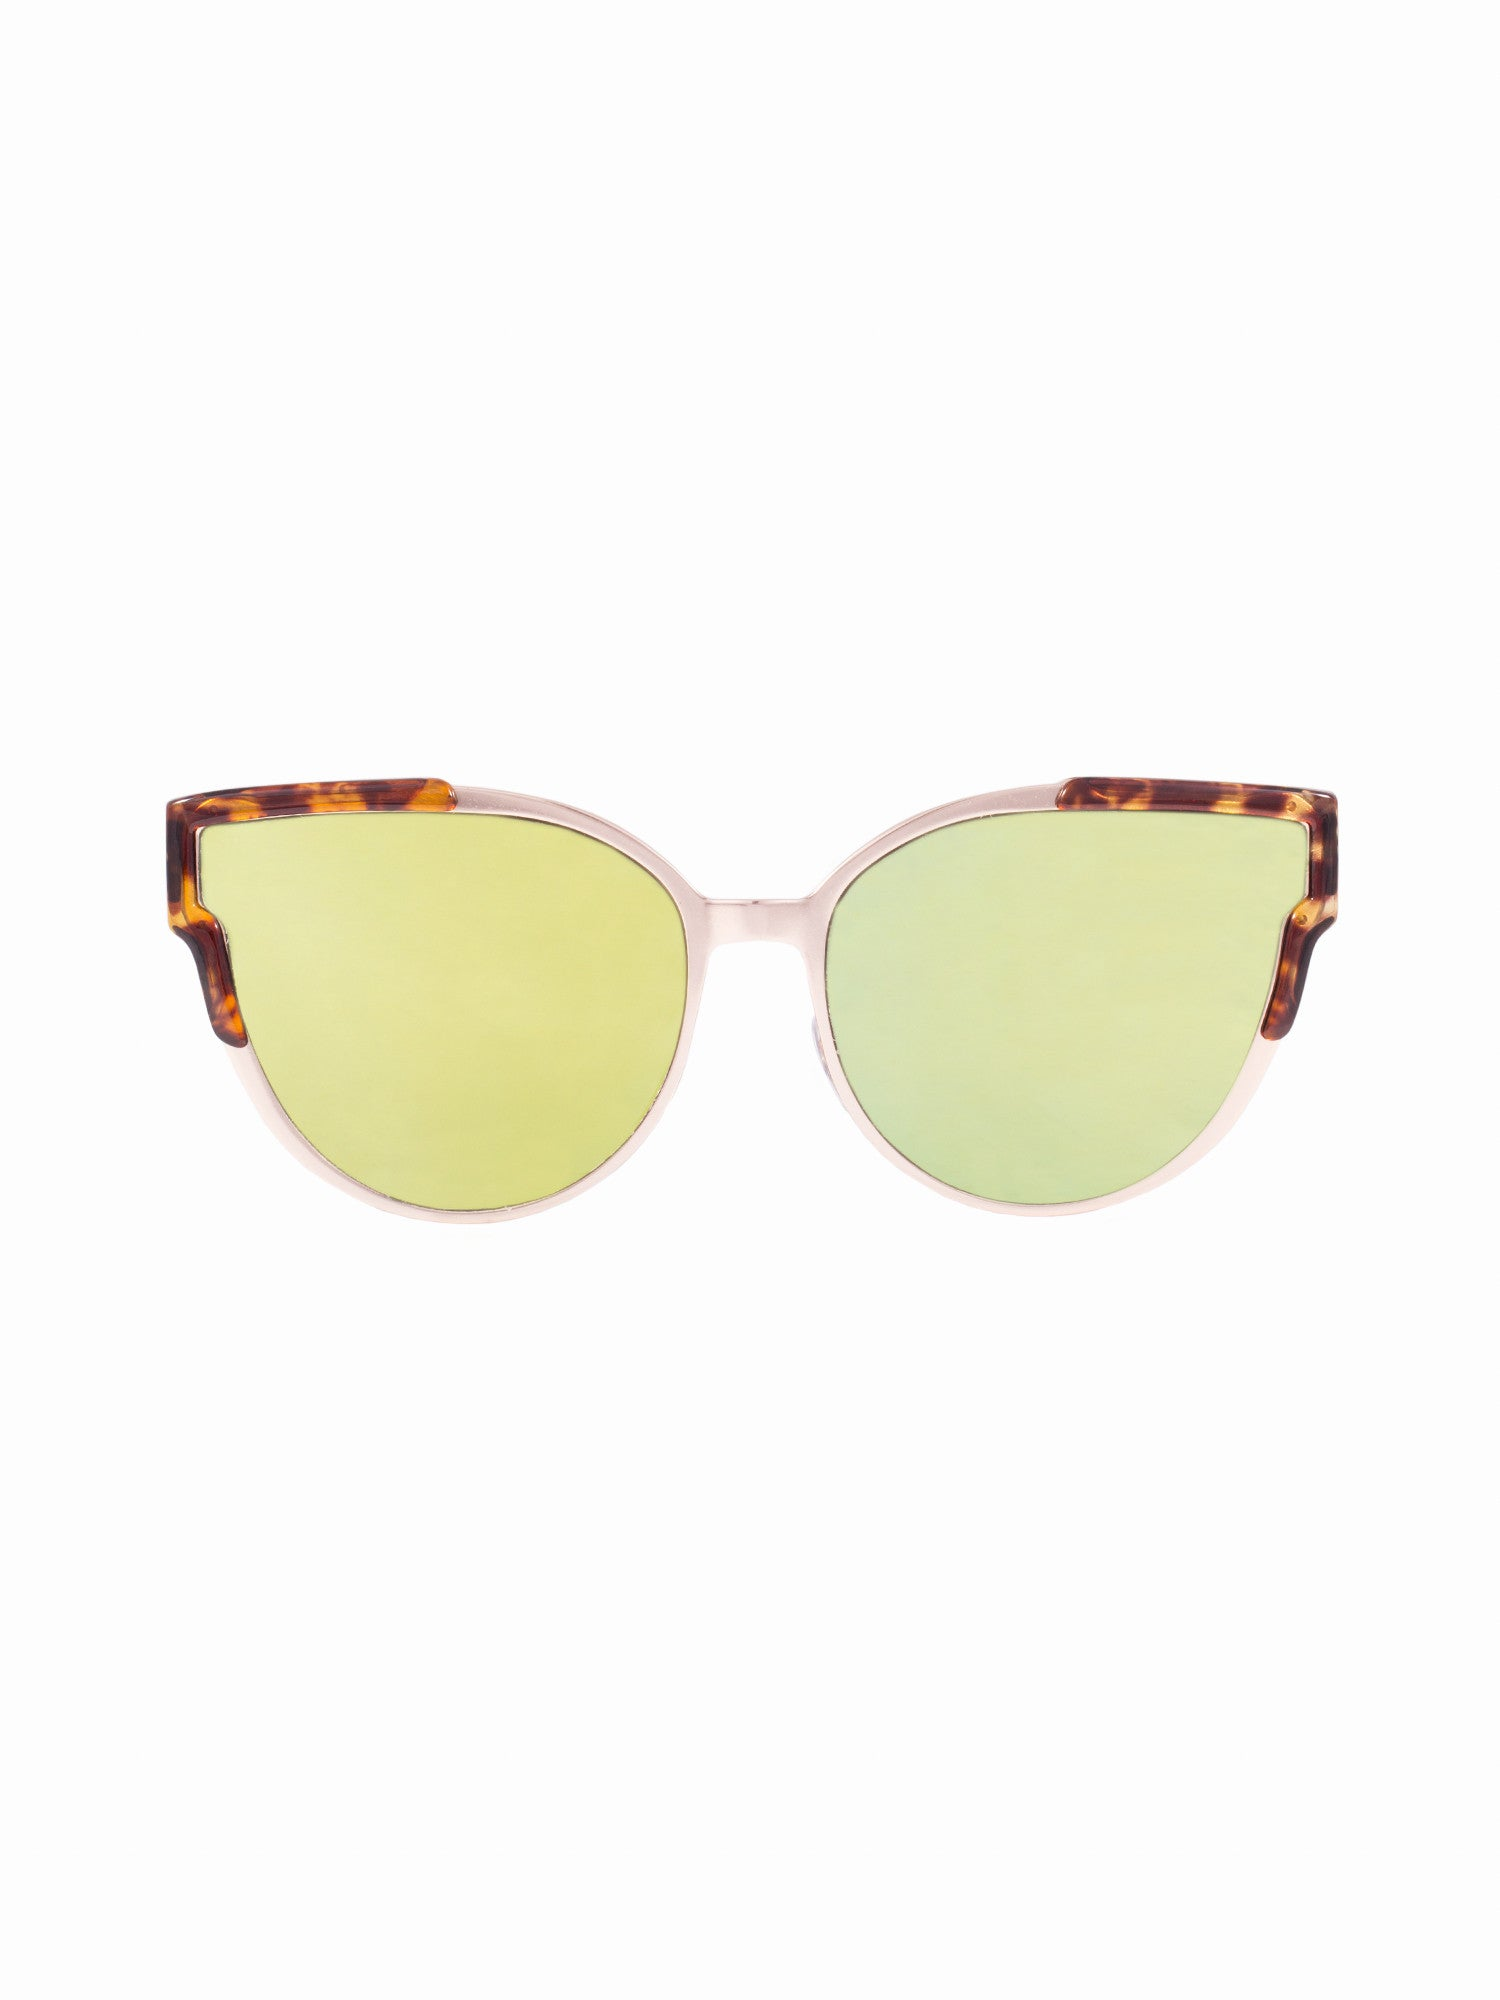 Cat Eye Lens Cosmos Sunnies - Gold Soul - 1